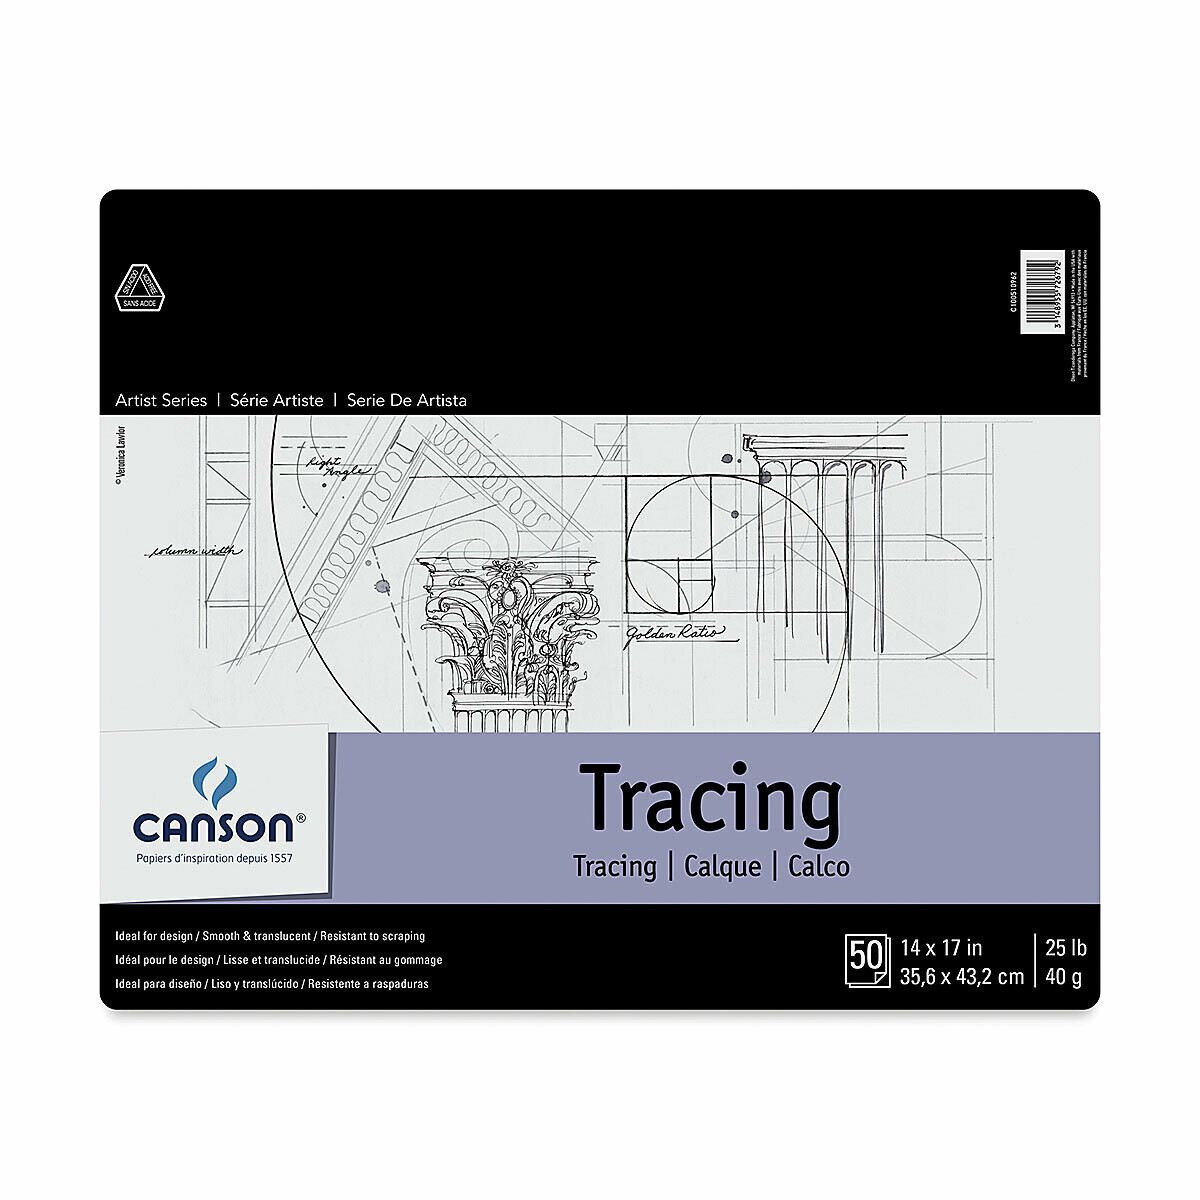 Canson Tracing Paper